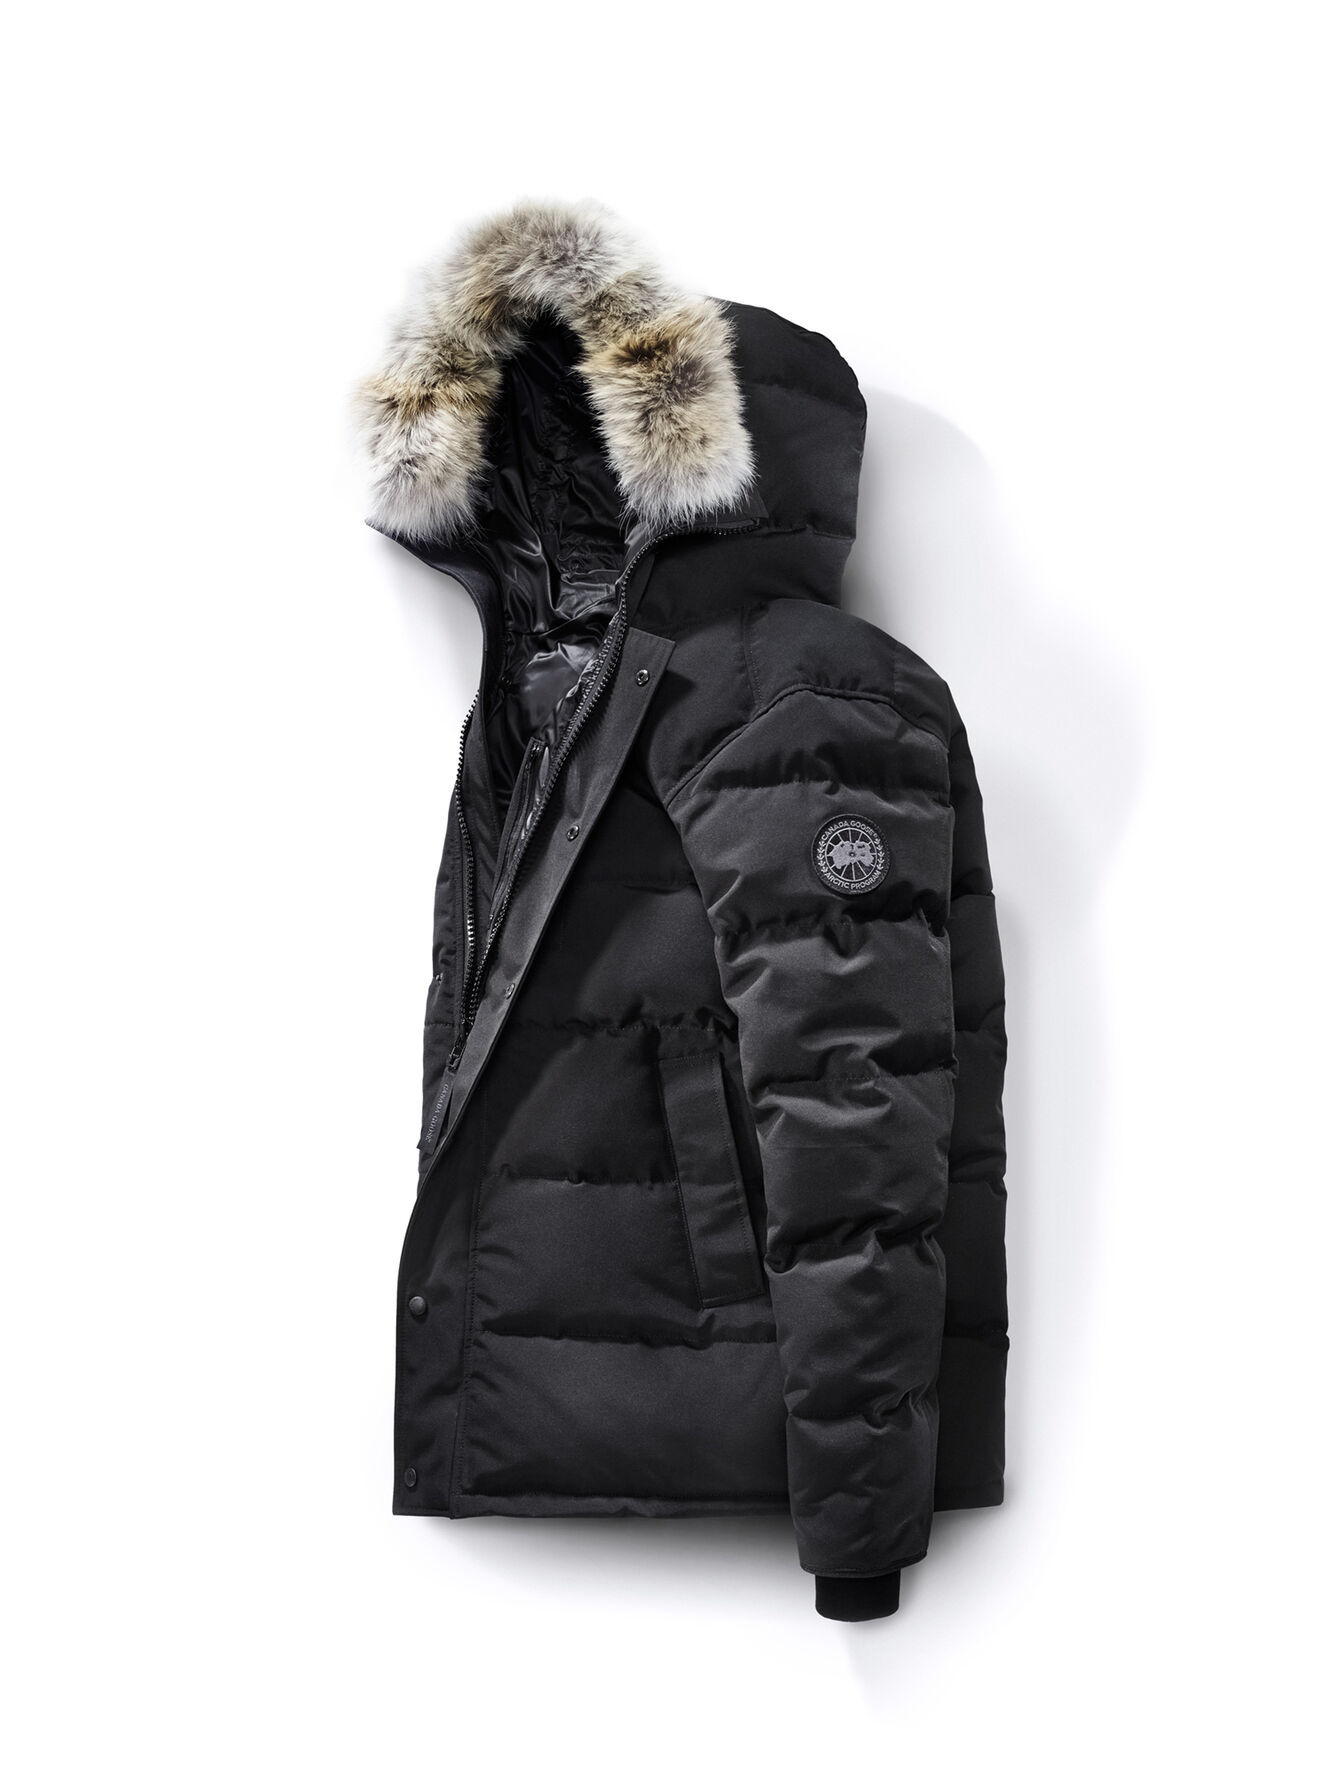 Canada Goose victoria parka sale official - Mens Extreme Weather Outerwear | Canada Goose?